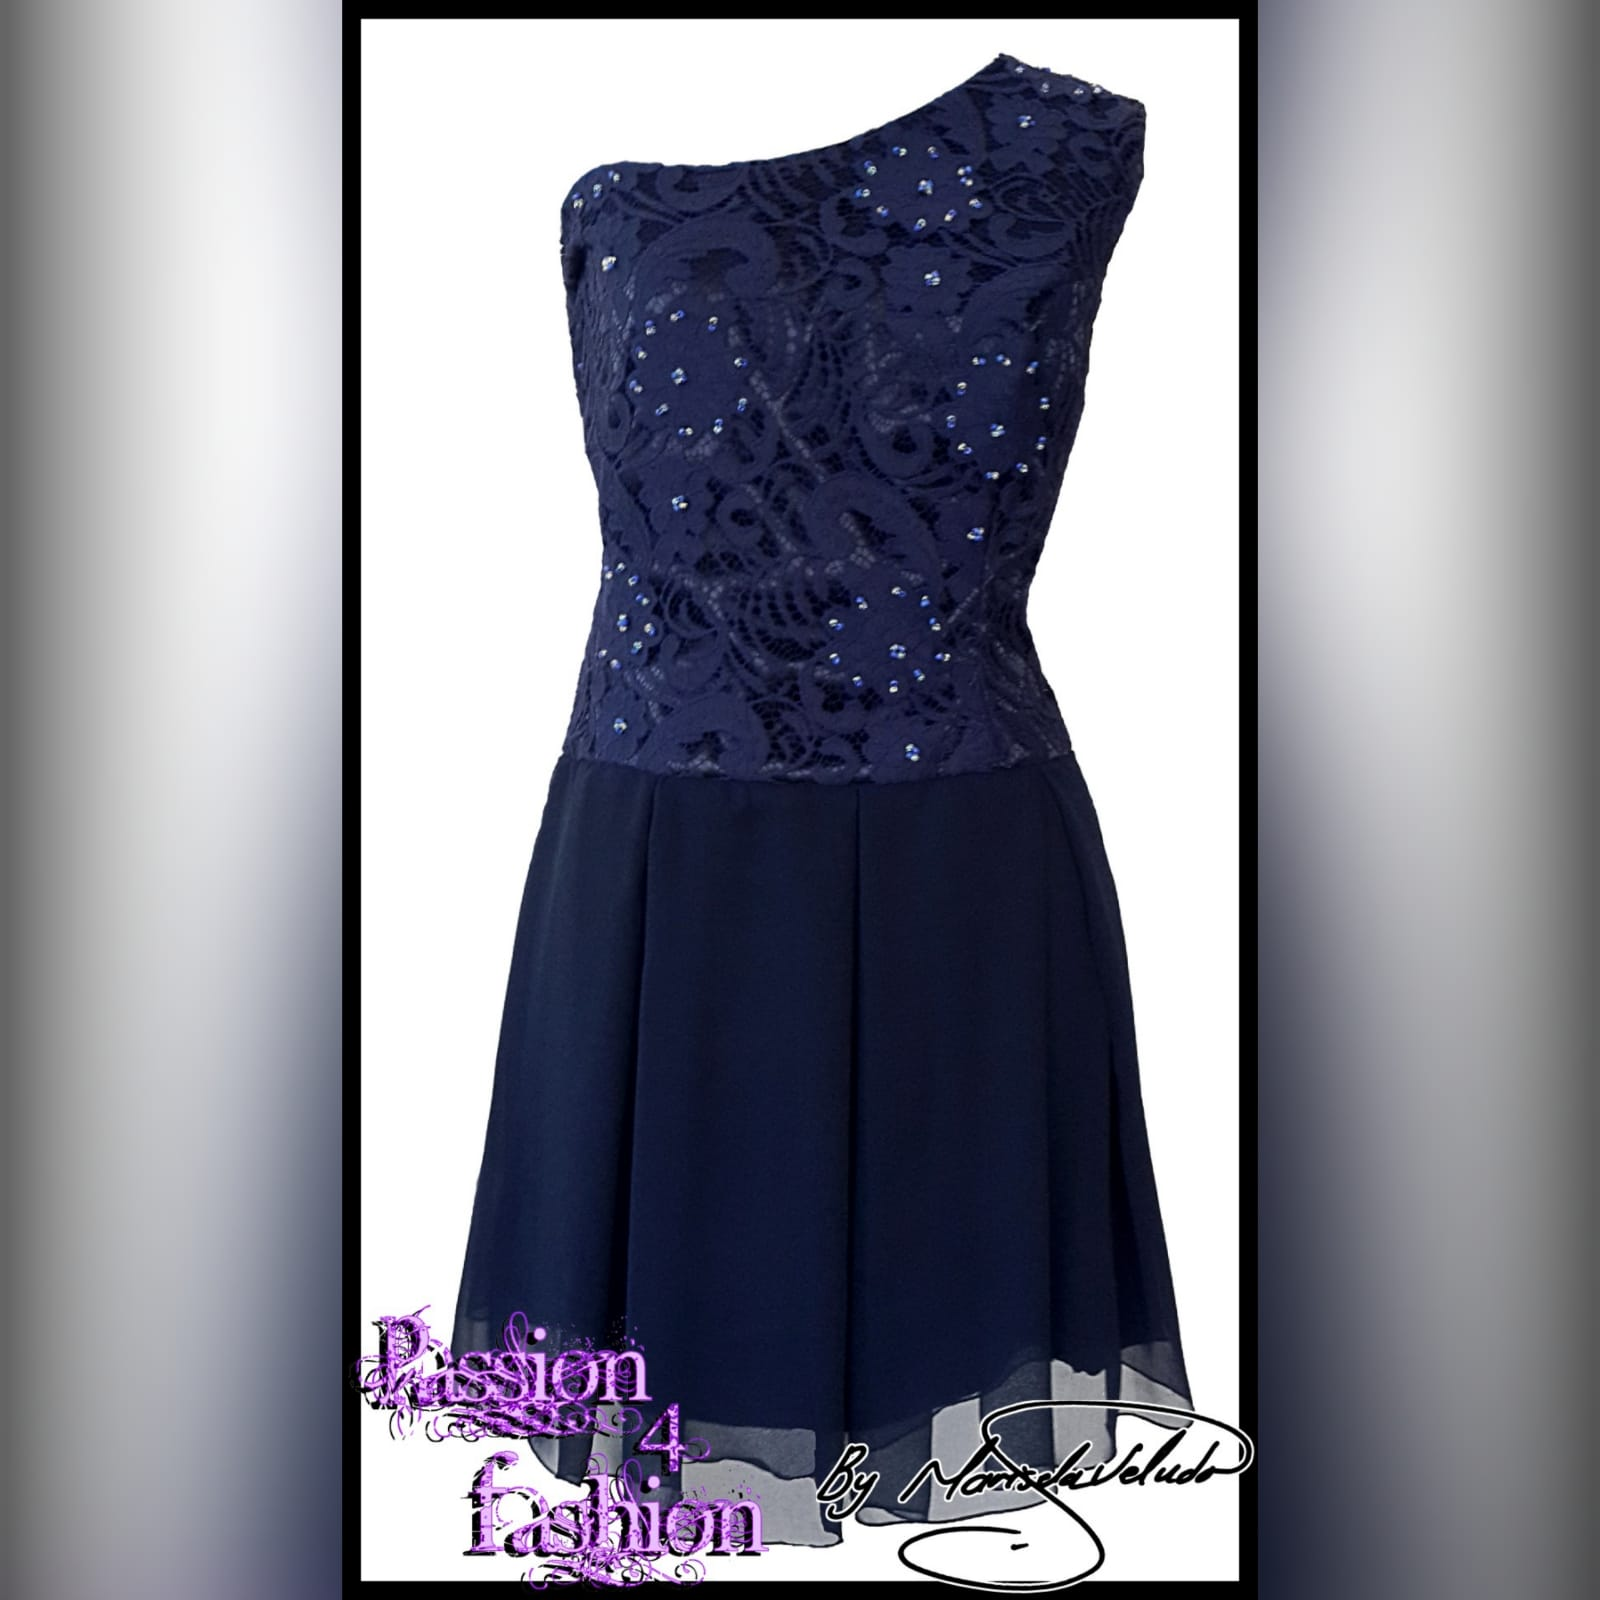 Navy blue short party evening dress 1 navy blue short party evening dress, with a one shoulder lace bodice, and bottom wide pleated chiffon skirt part